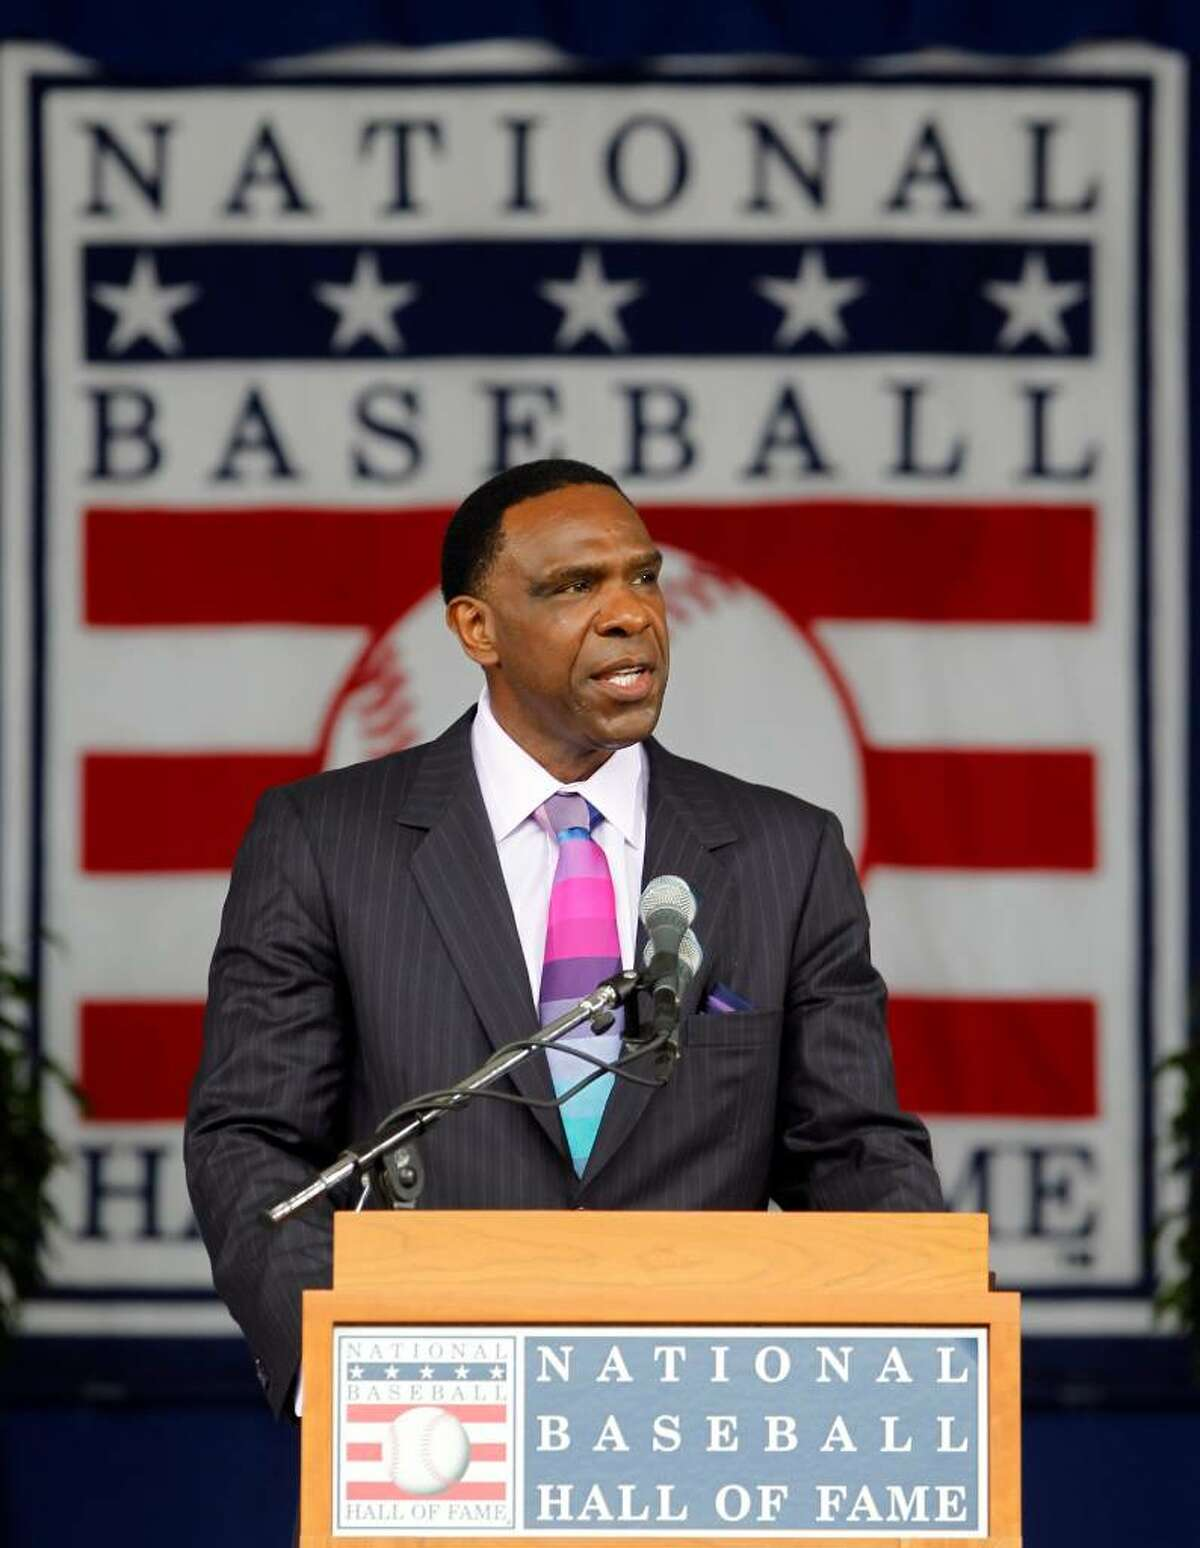 Andre Dawson delivers his Baseball Hall of Fame induction speech during a ceremony at the Clark Sports Center in Cooperstown, N.Y., on Sunday, July 25, 2010. (AP Photo/Mike Groll)